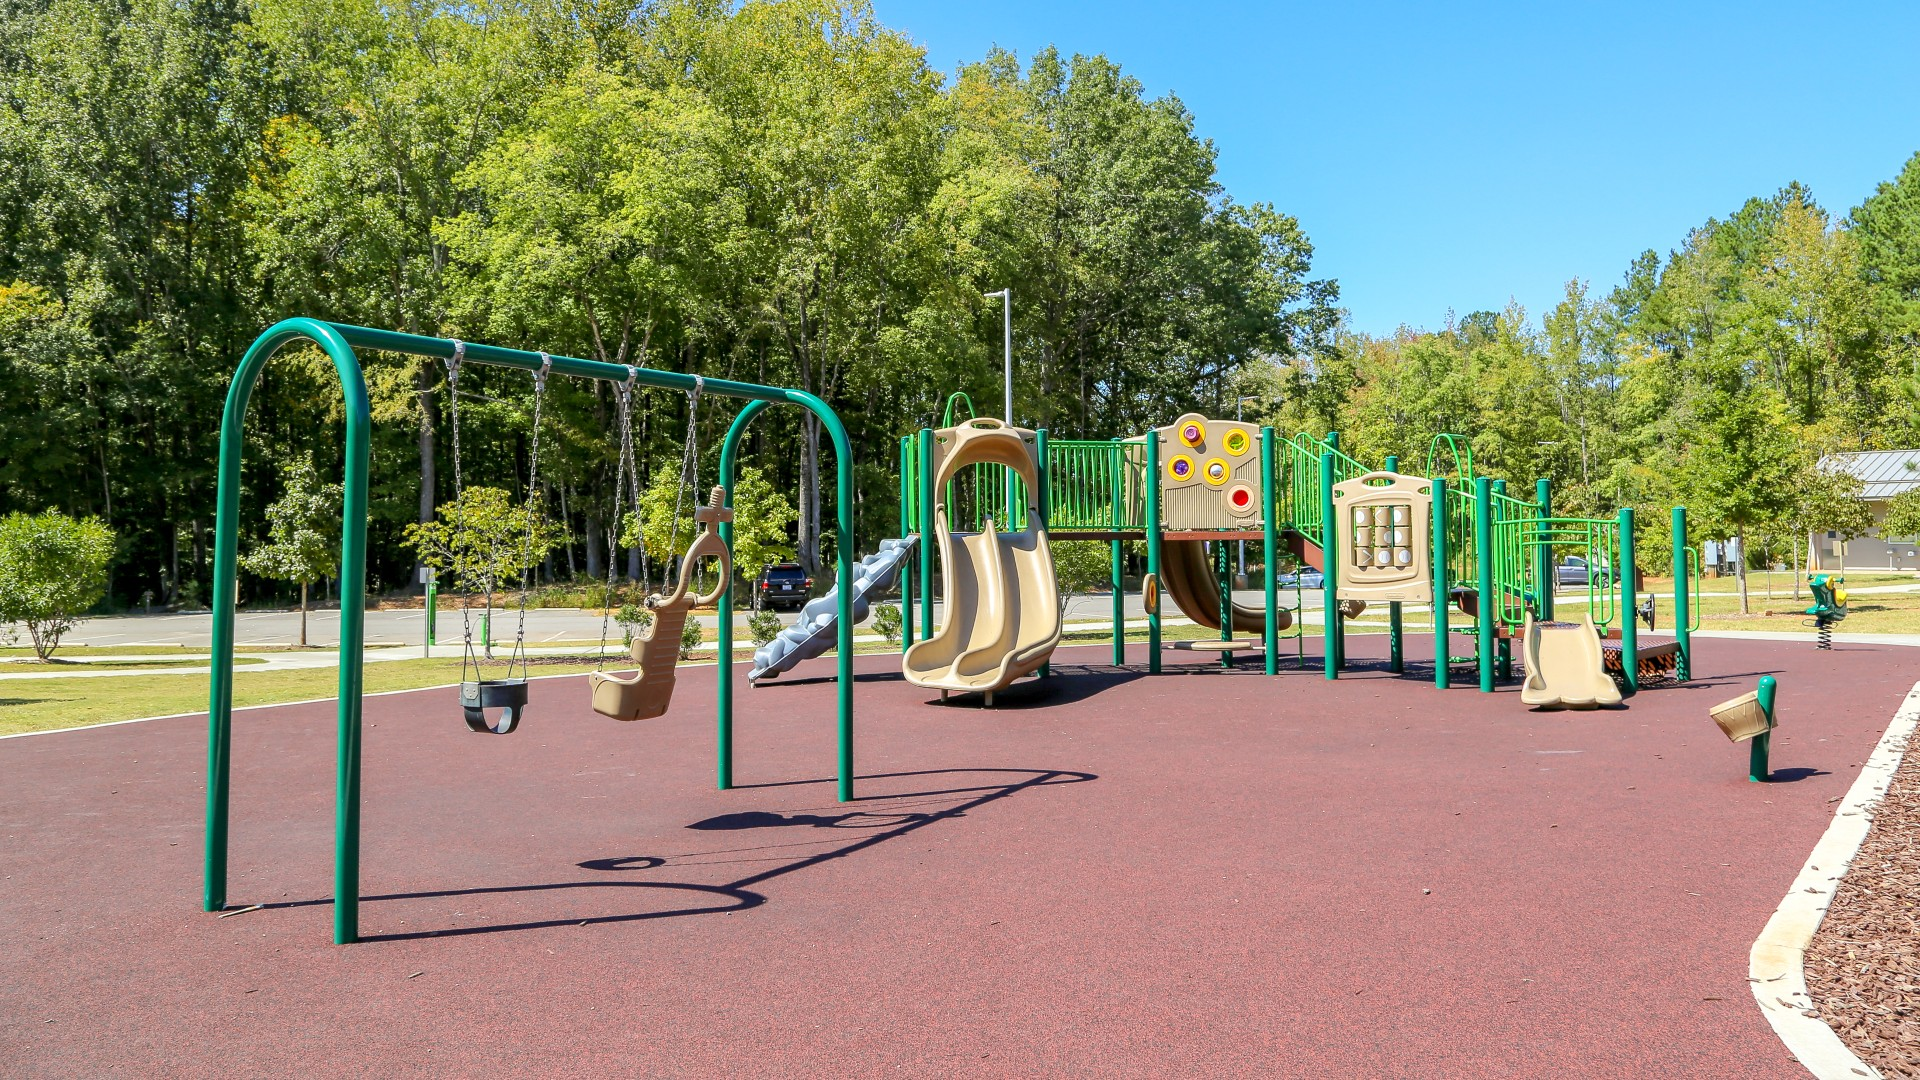 Part of the playground which includes zipline, slides, swings, climbing elements with rubber surfacing.